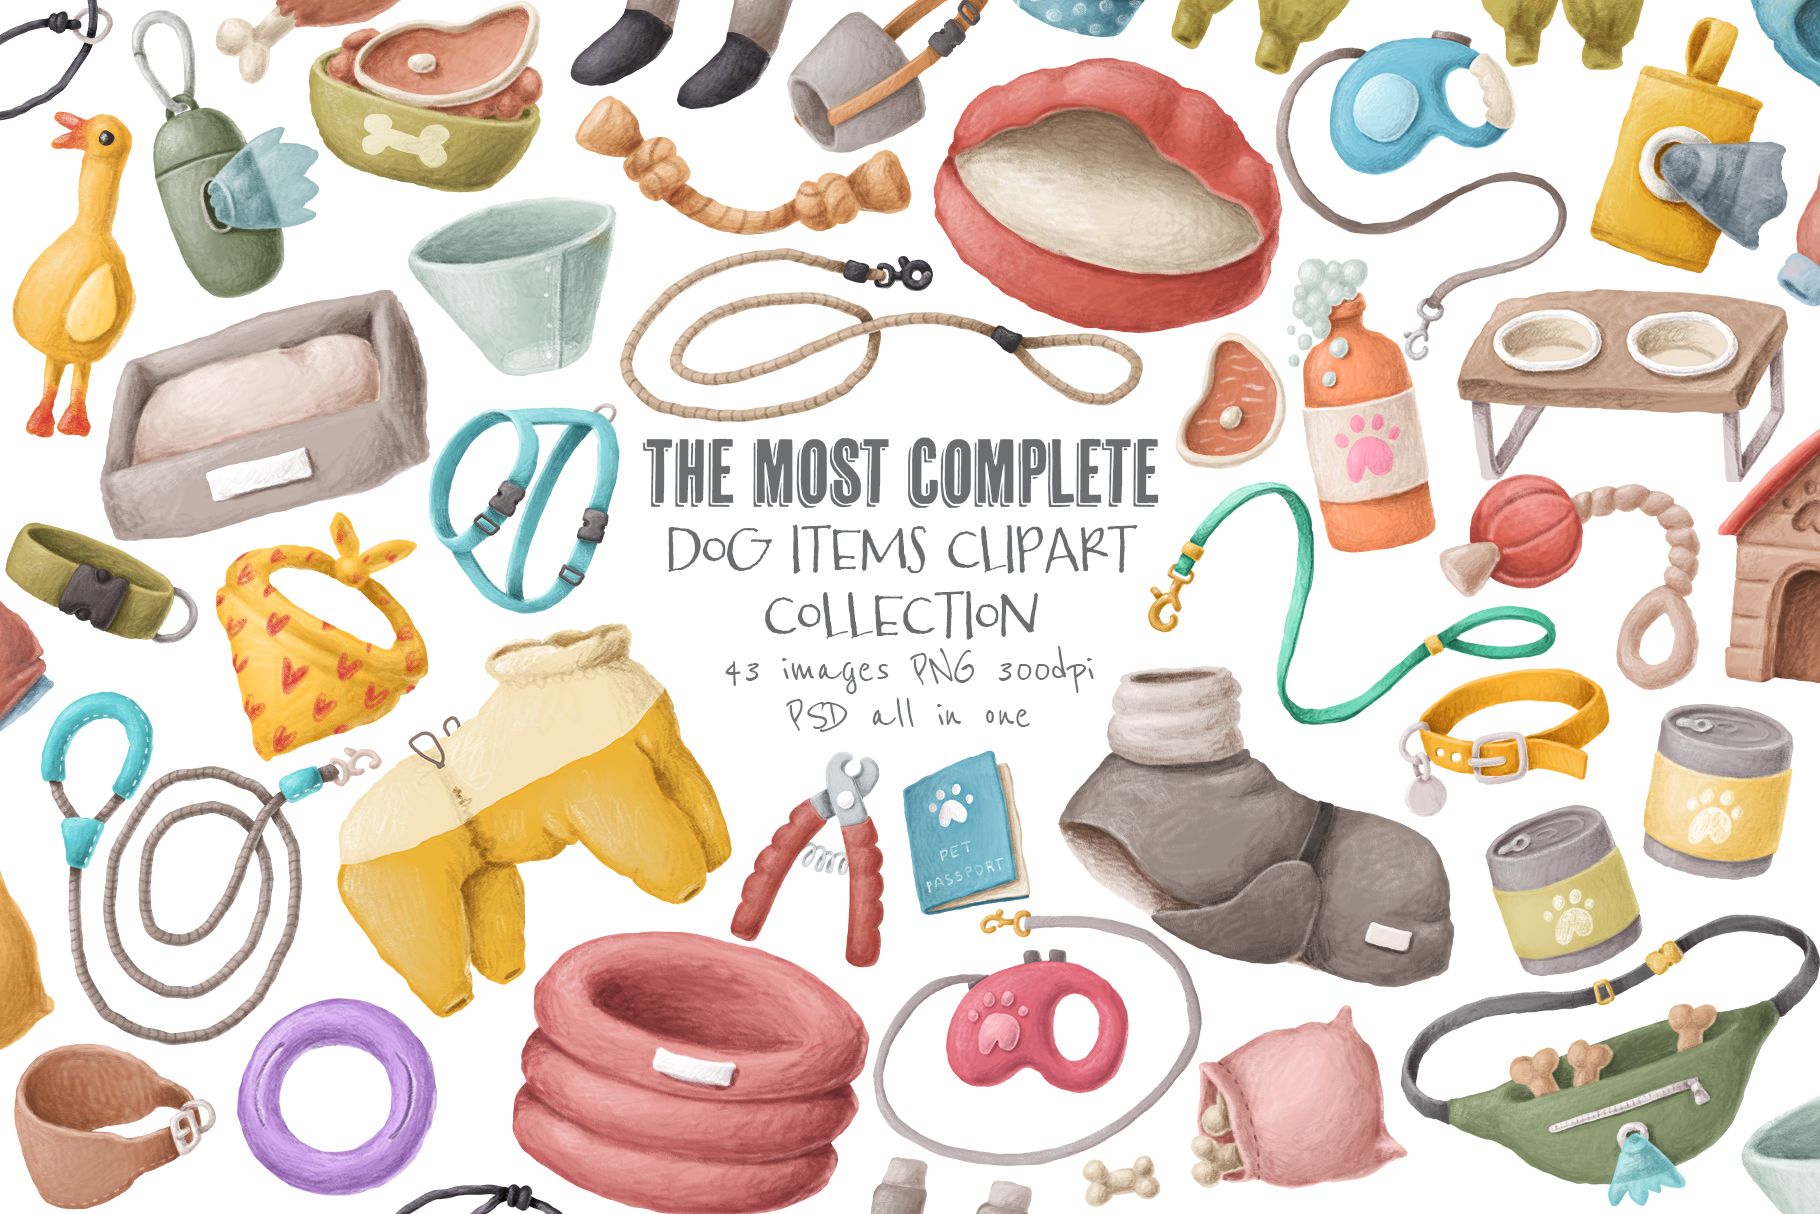 Dog items clipart collection example image 1